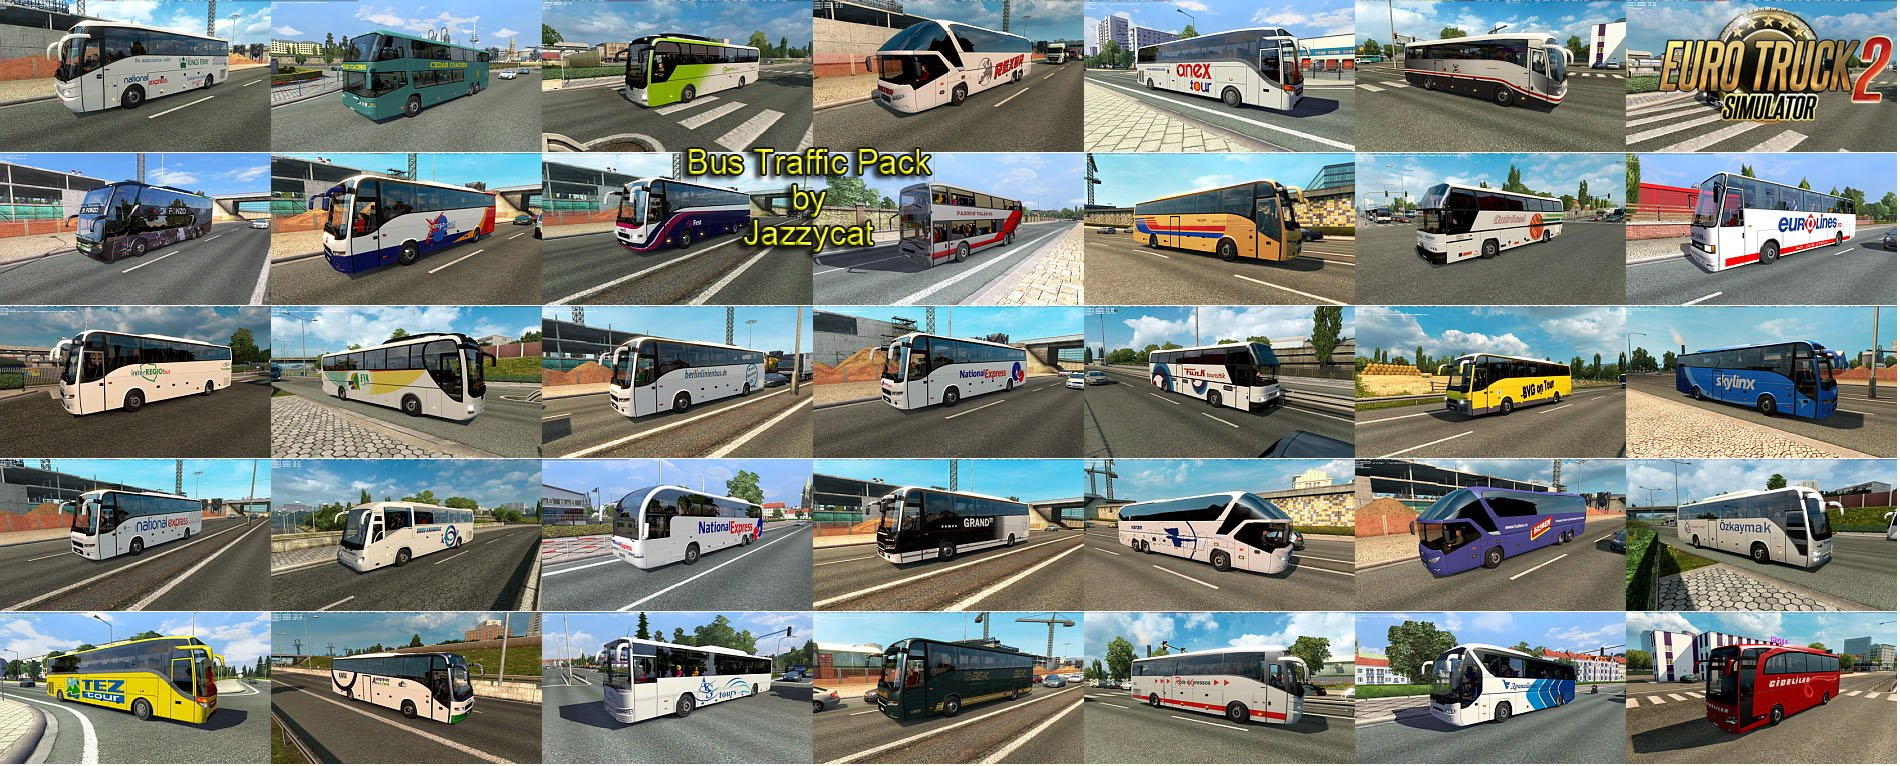 Bus Traffic Pack v2.5 by Jazzycat